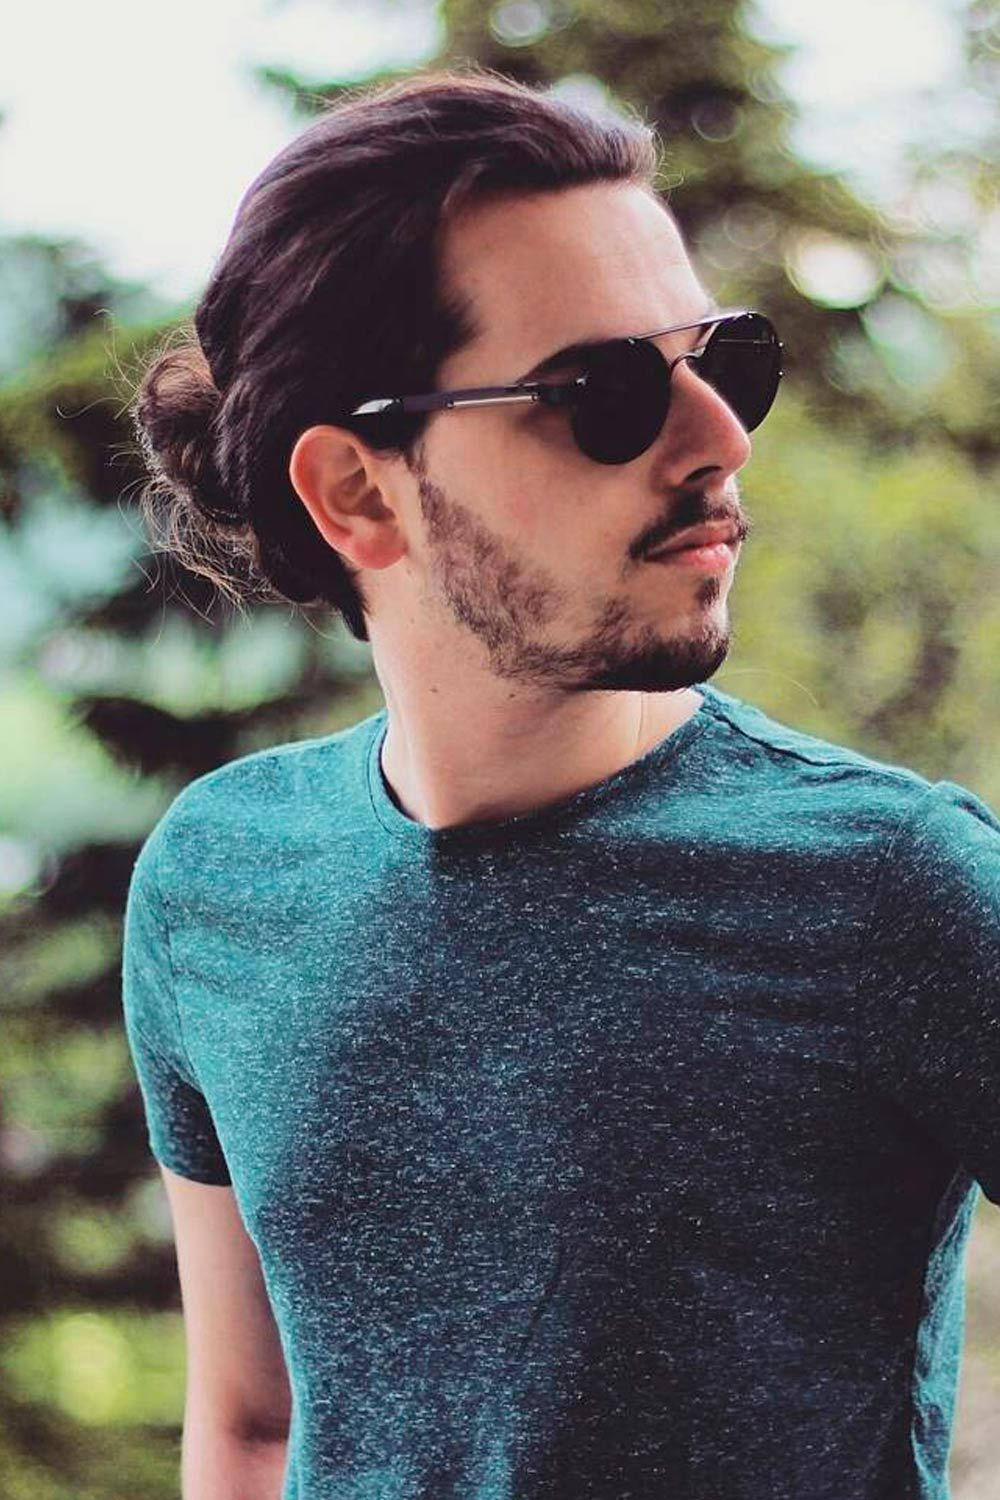 The best hats for men with long hair · 1. How To Get Style And Sport The On Trend Man Bun Hairstyle